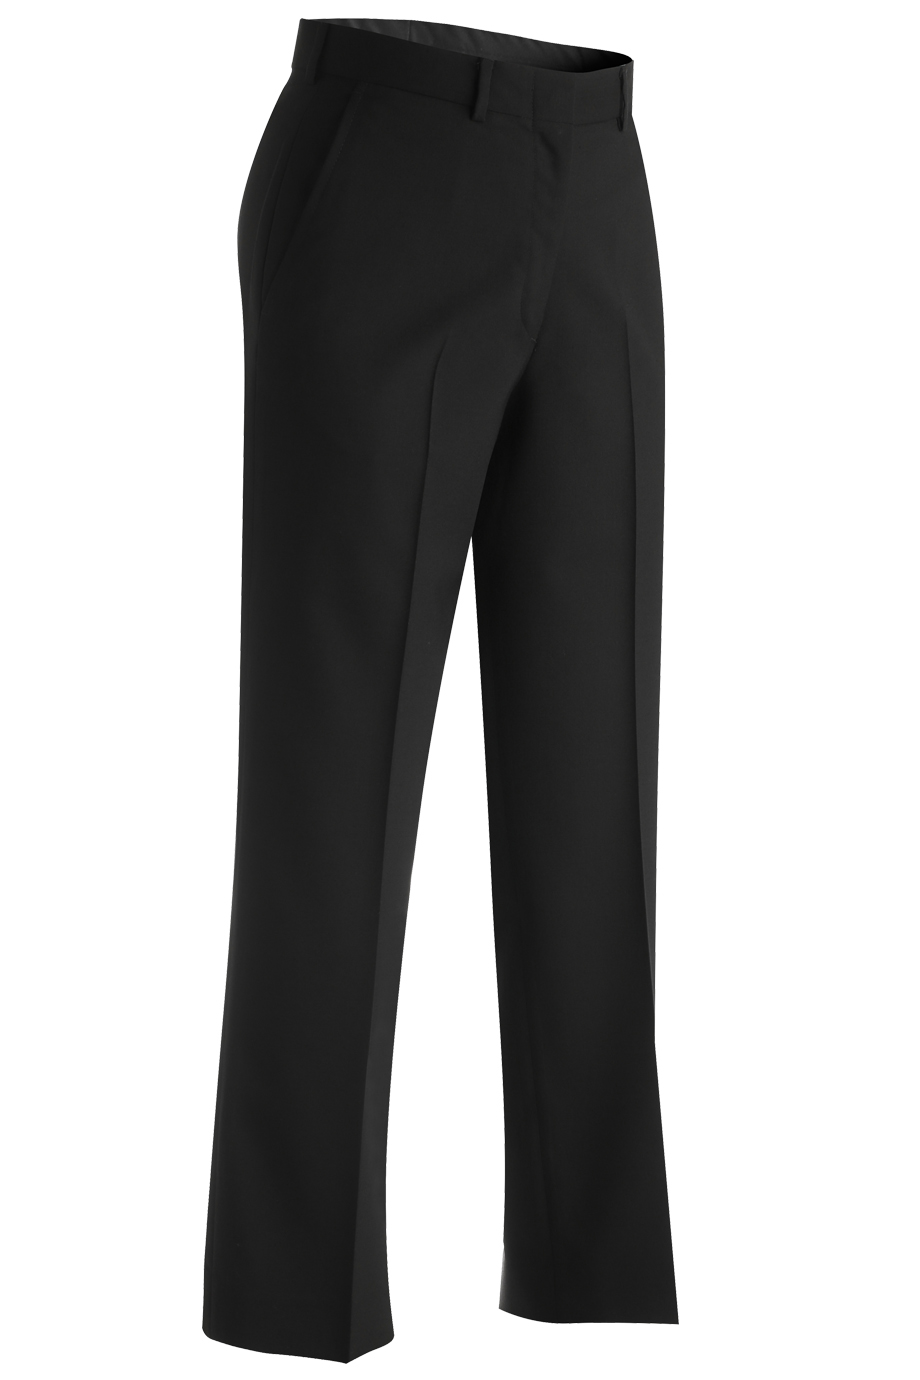 Edwards Women's Wool Blend Flat Front Dress Pant - 8783